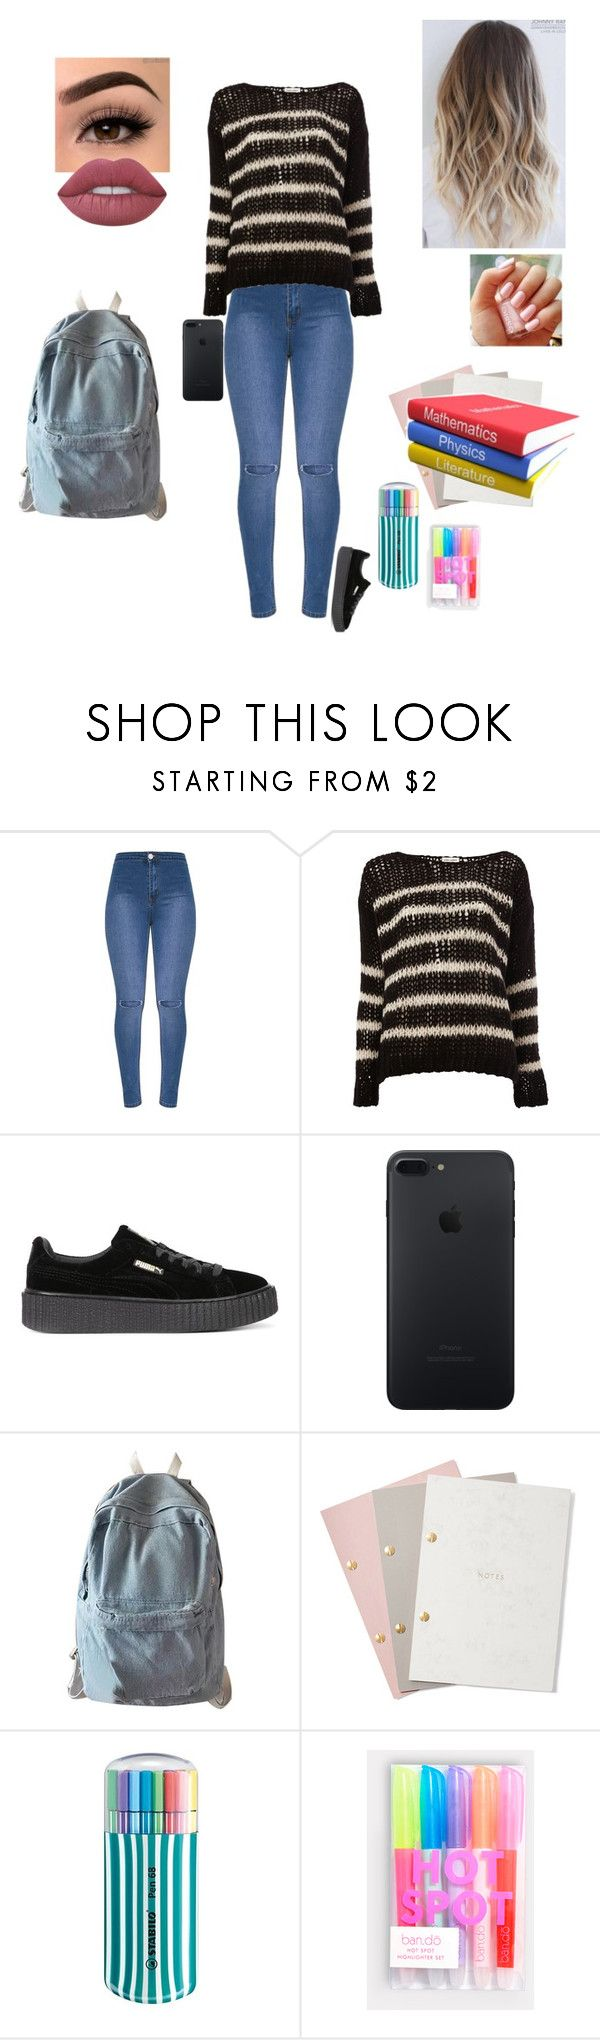 """Studying @ The Local Bistro"" by sonialicetmartinez ❤ liked on Polyvore featuring Yves Saint Laurent, Puma, WithChic, StudioSarah, Stabilo, ban.do and Lime Crime"